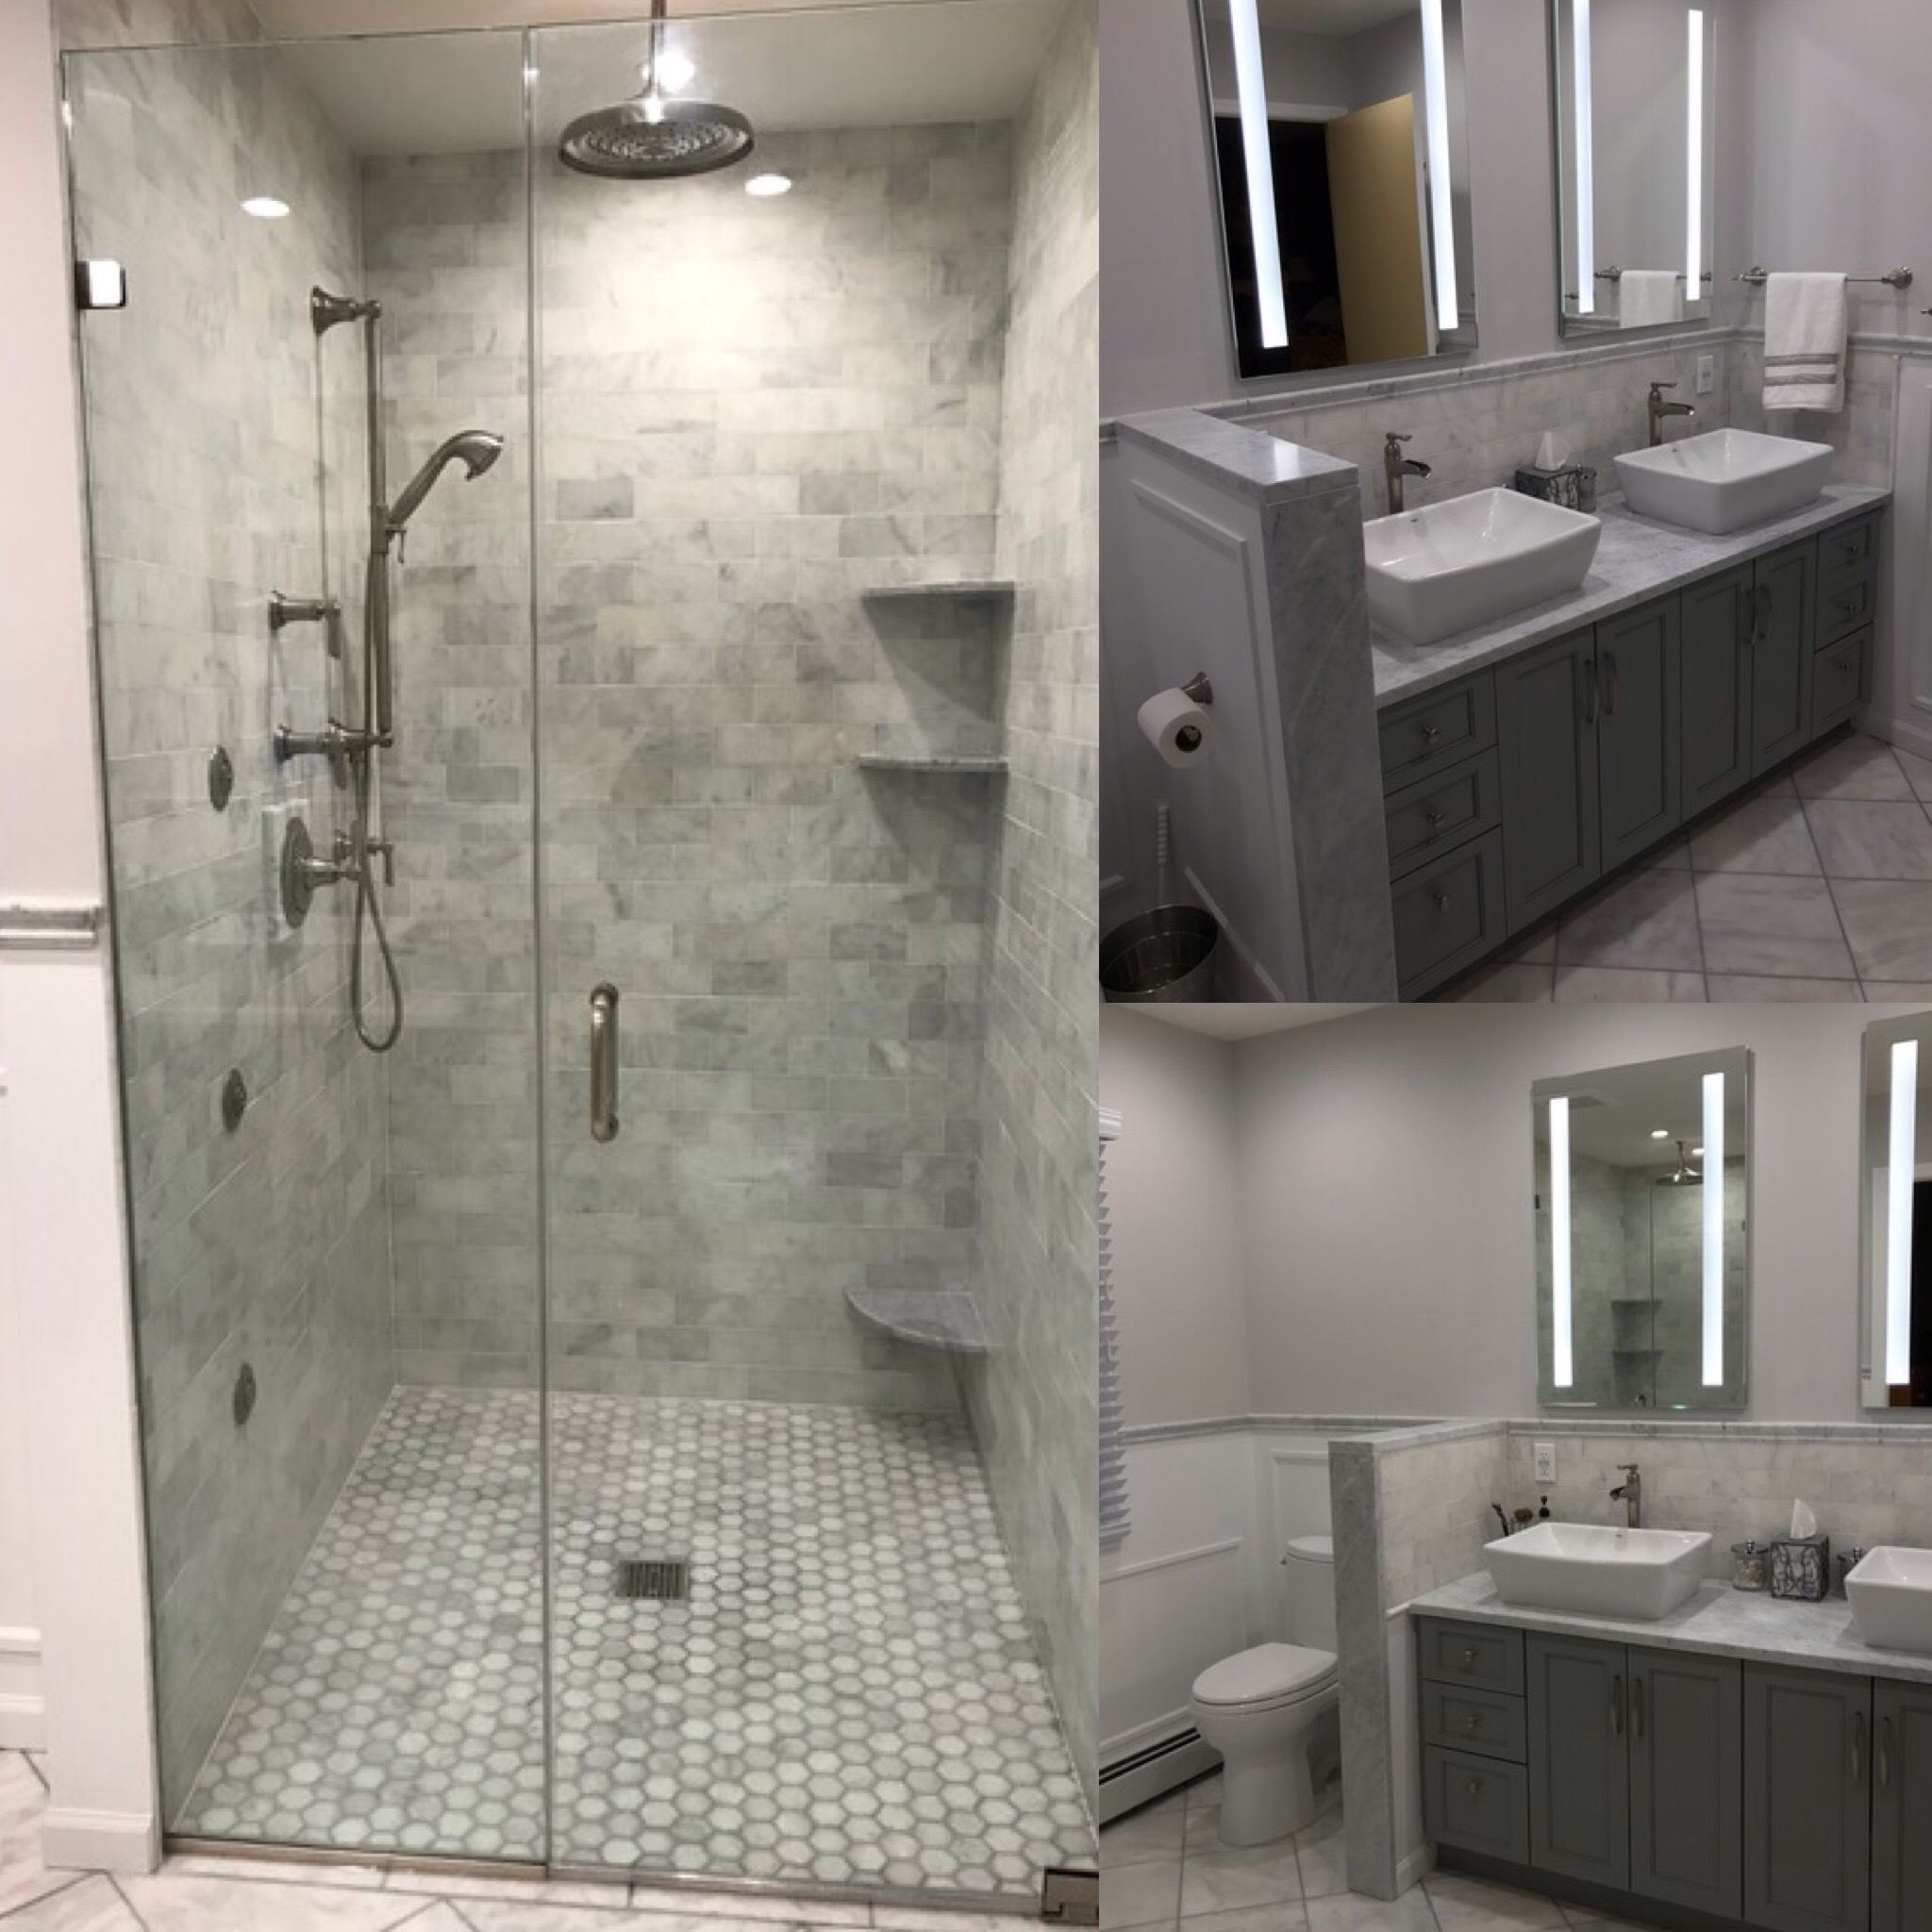 Majestic Kitchens Baths Designer Jodi Duerr Helped Her Clients Create This Stunning New Bathroom For The With Images Bathroom Design Kitchens And Bath Kitchens Bathrooms